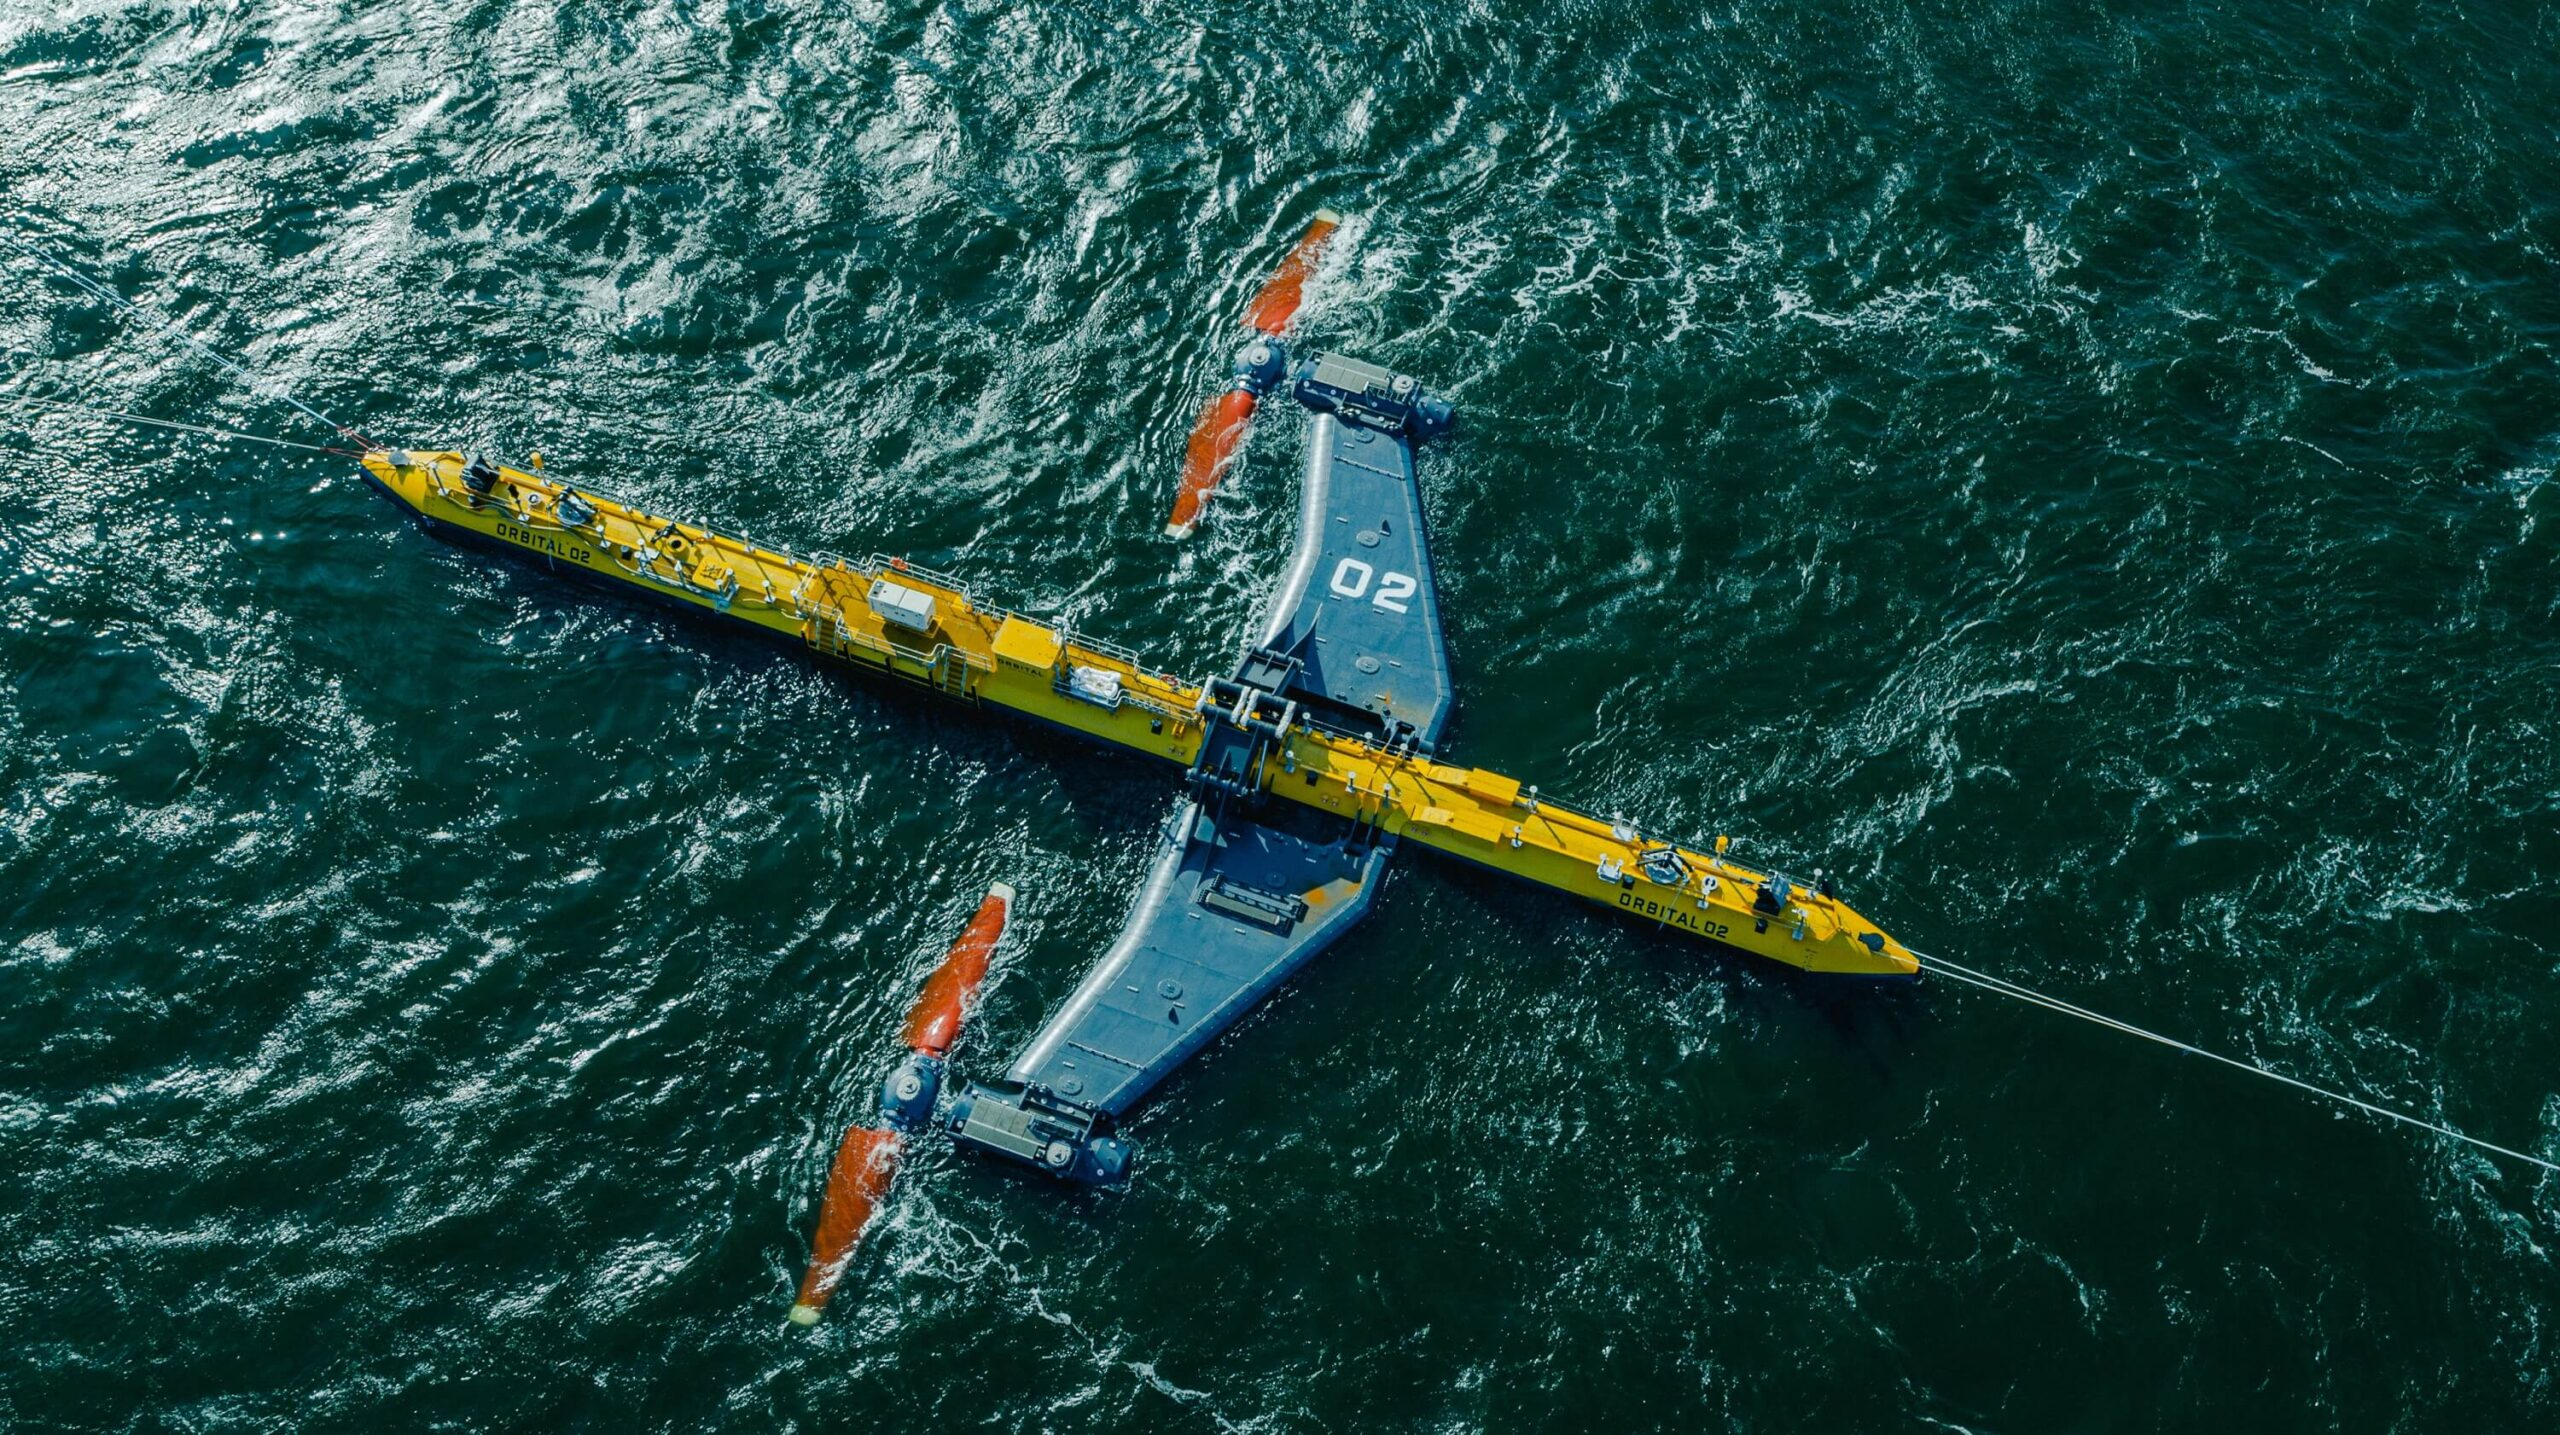 Orbital's O2 floating tidal power platform is rated at 2 MW, and it's designed to harvest tidal power much more cheaply than barrage-style installations